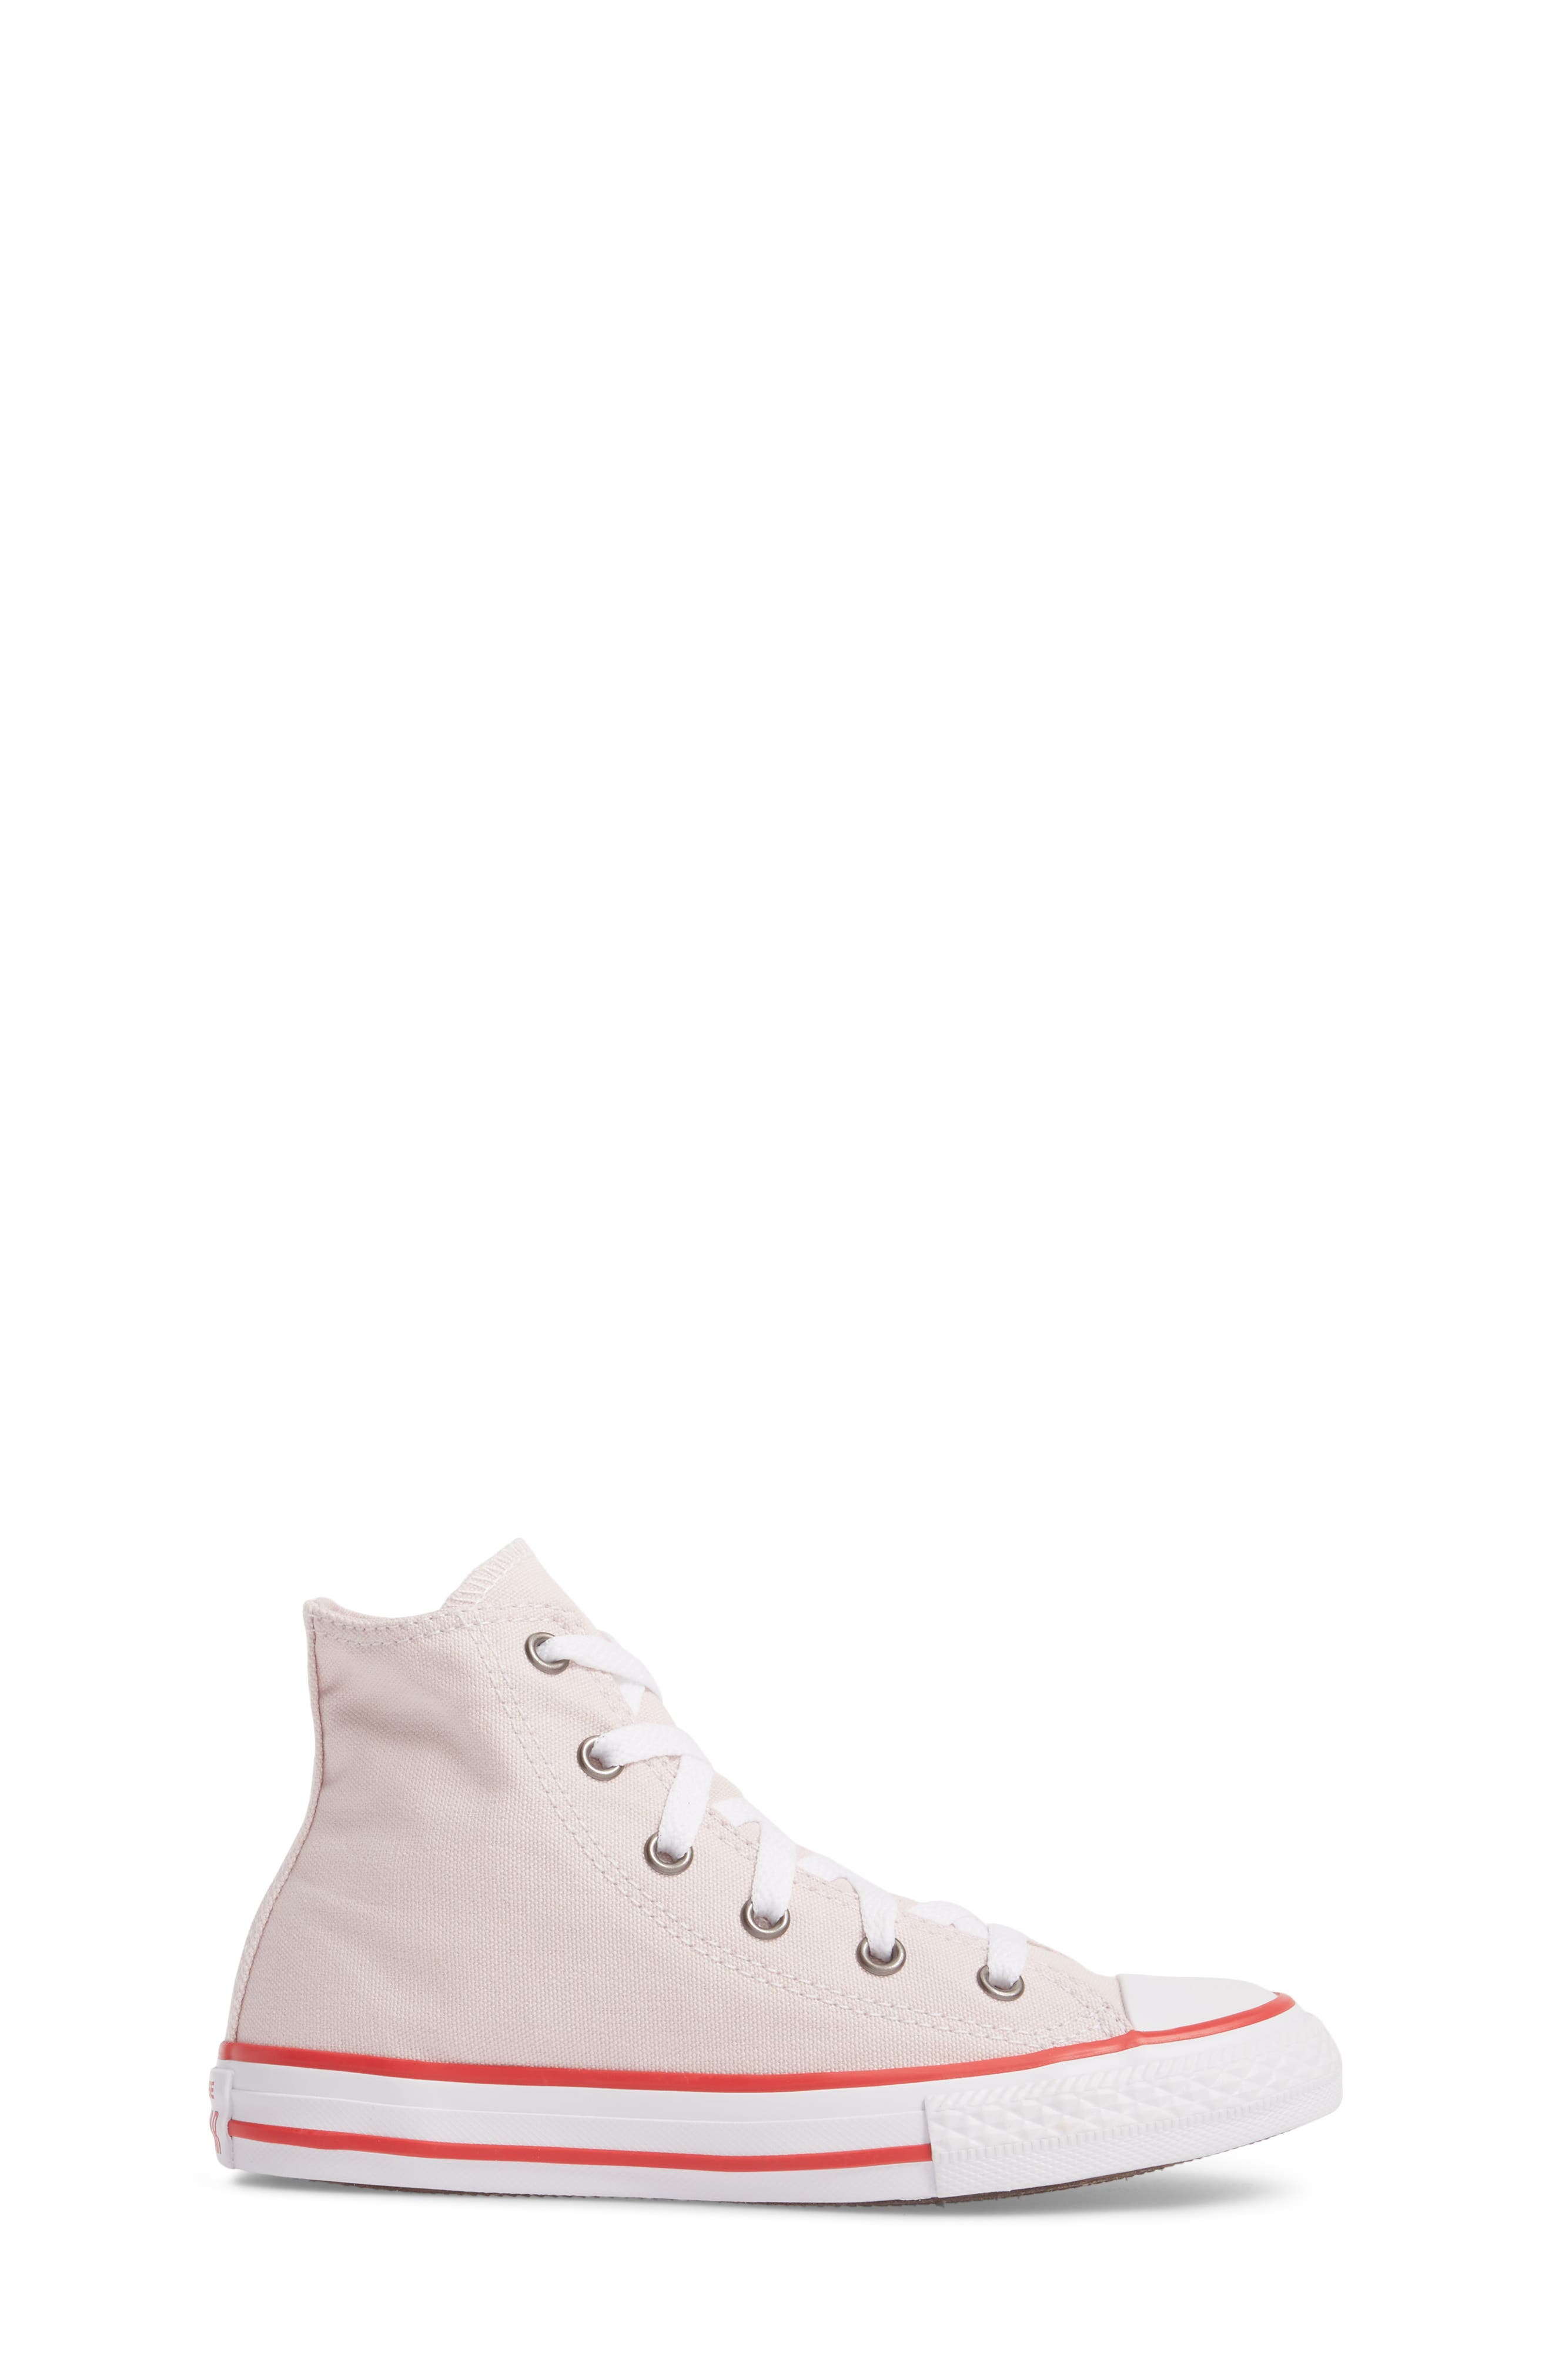 Chuck Taylor<sup>®</sup> All Star<sup>®</sup> High Top Sneaker,                             Alternate thumbnail 9, color,